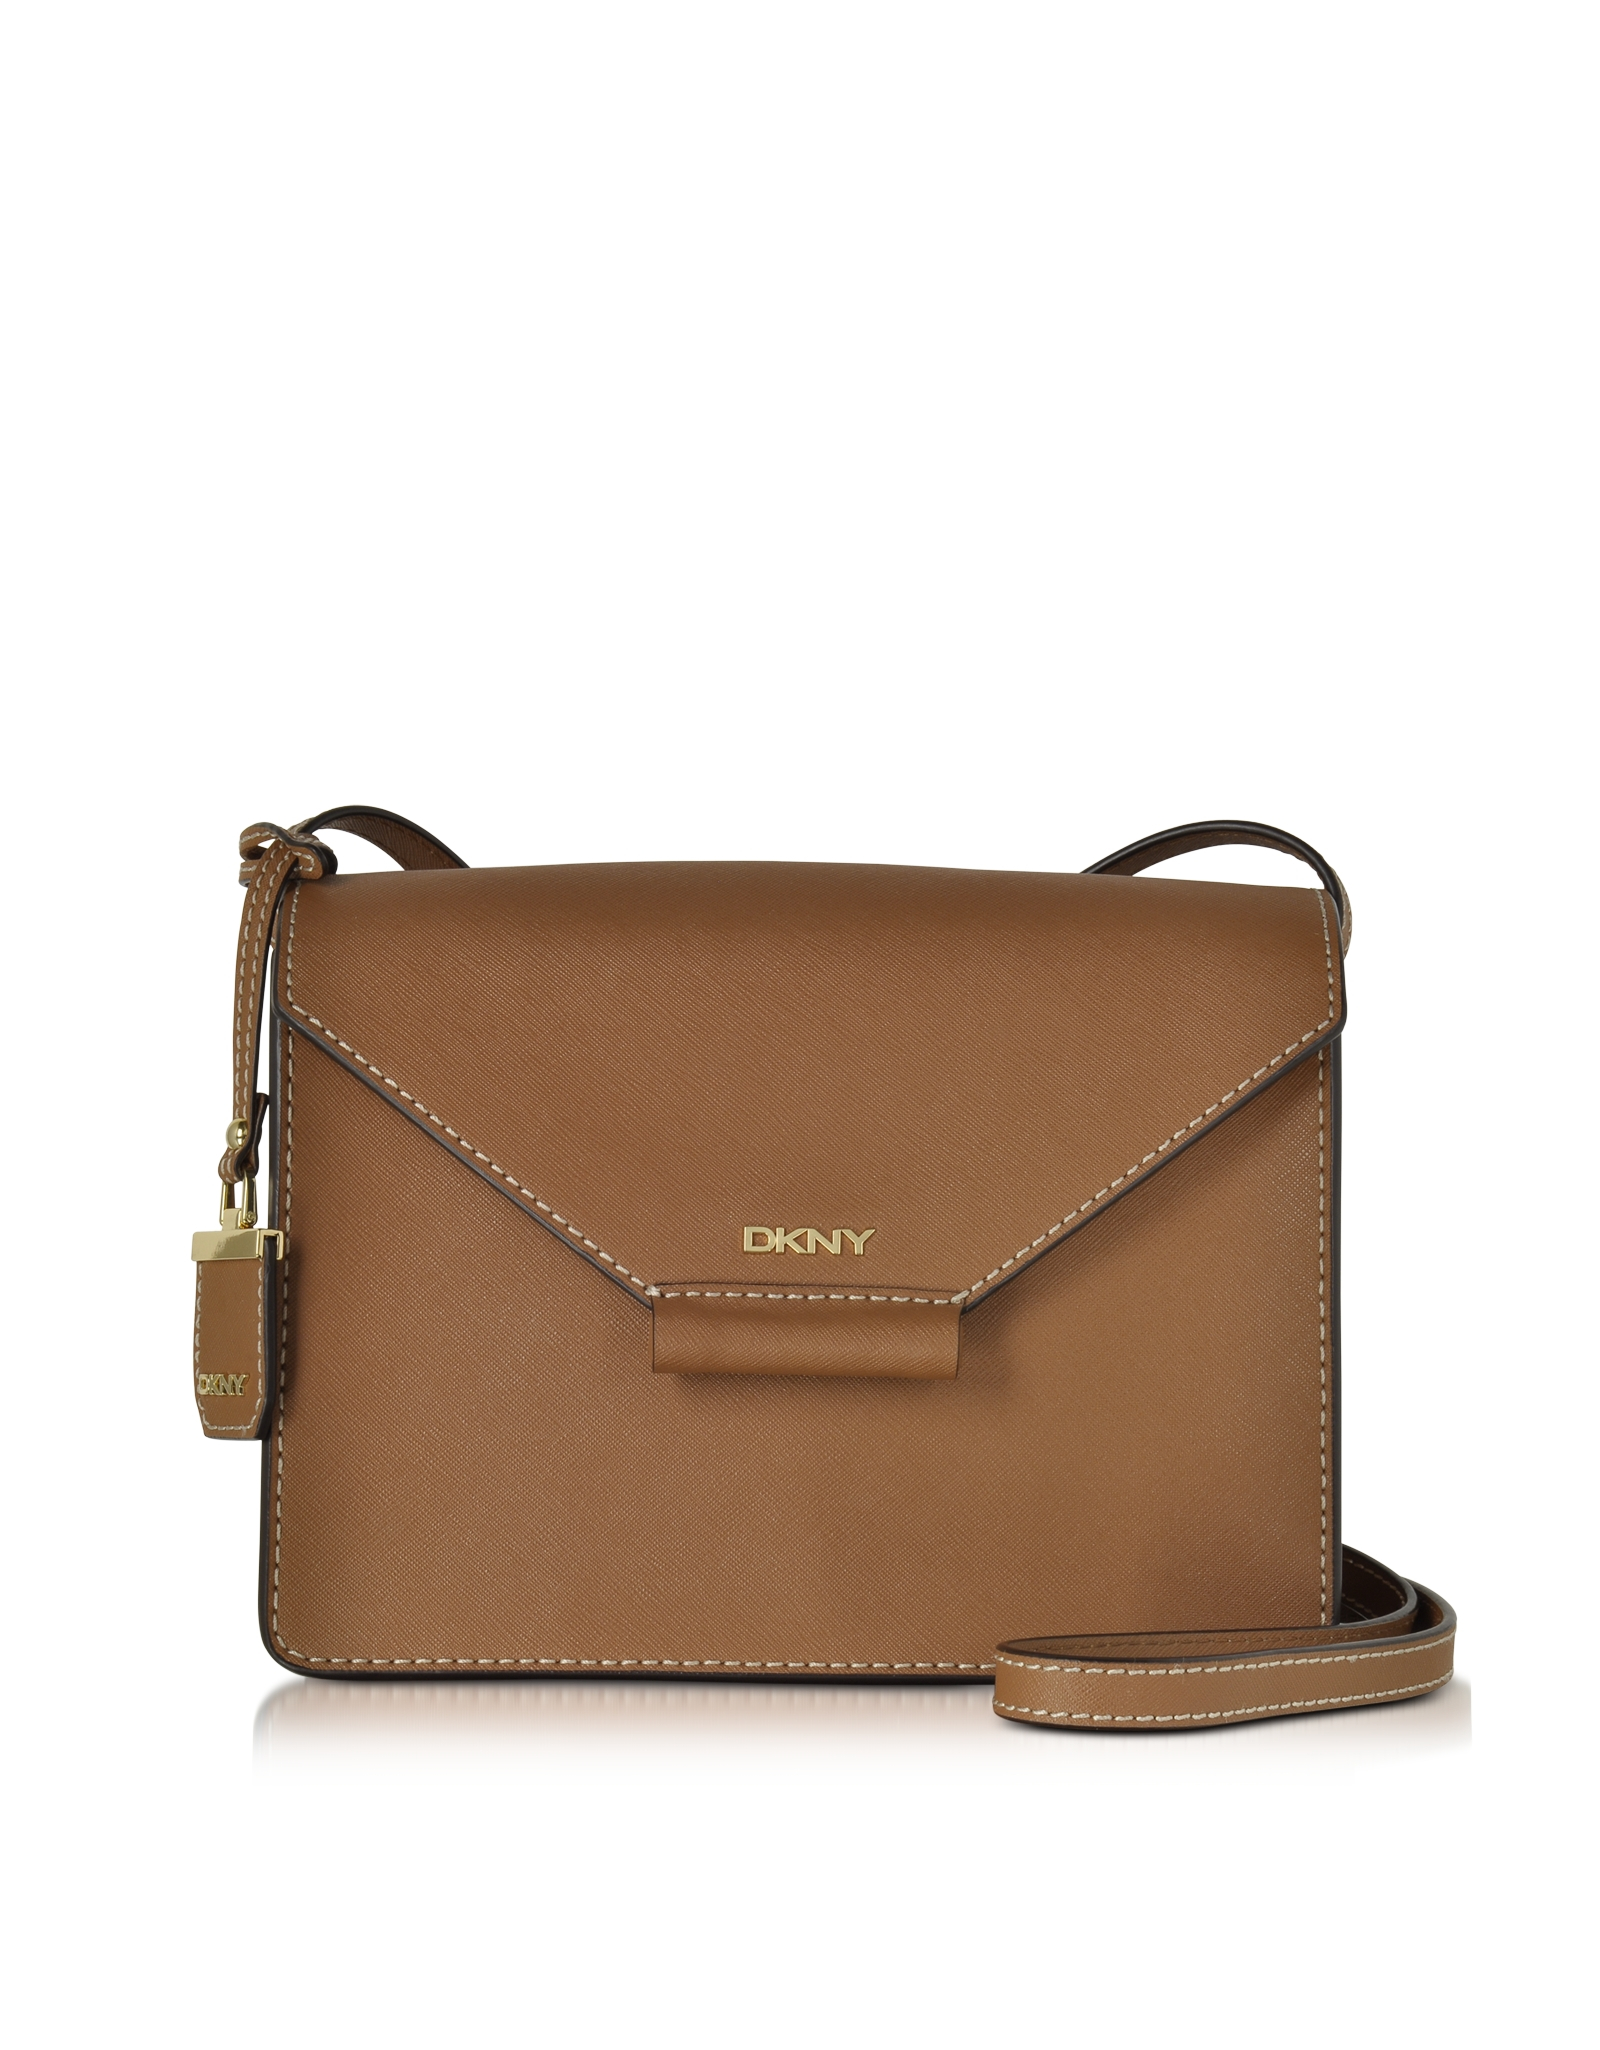 dkny bryant park saffiano leather flap crossbody in brown lyst. Black Bedroom Furniture Sets. Home Design Ideas